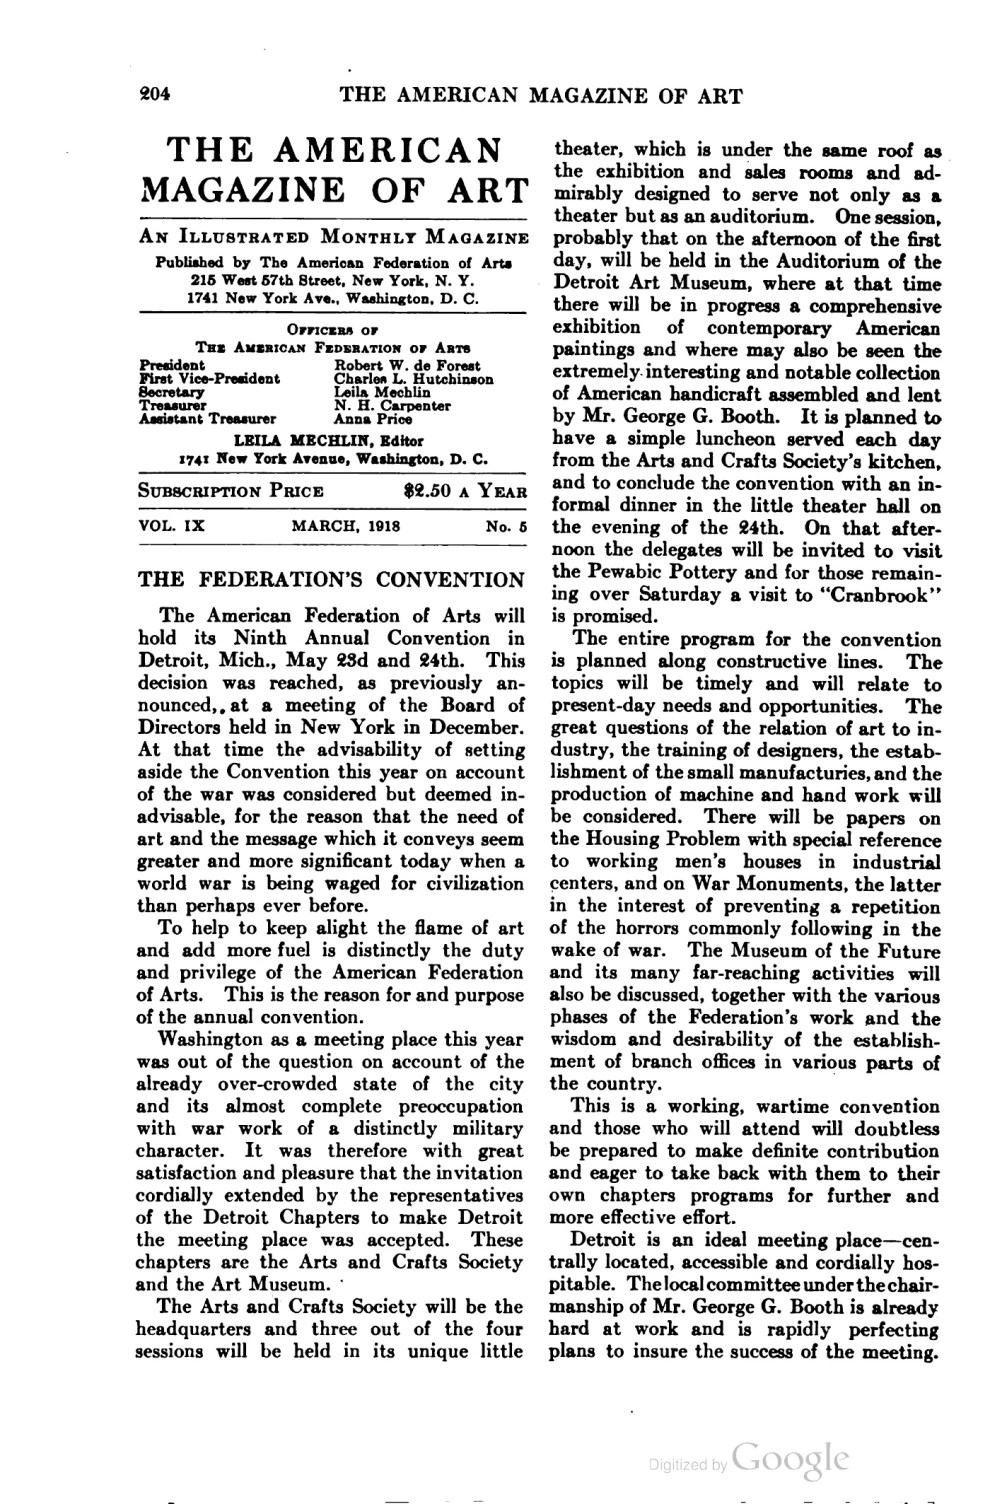 "The American Magazine of Art [Art of progress], The American Federation of the Arts, New York, NY, ""Notes : Works by alumni of Chicago Art Institute"", volume 9, number 5, March, 1918, page 206-207, not illustrated."